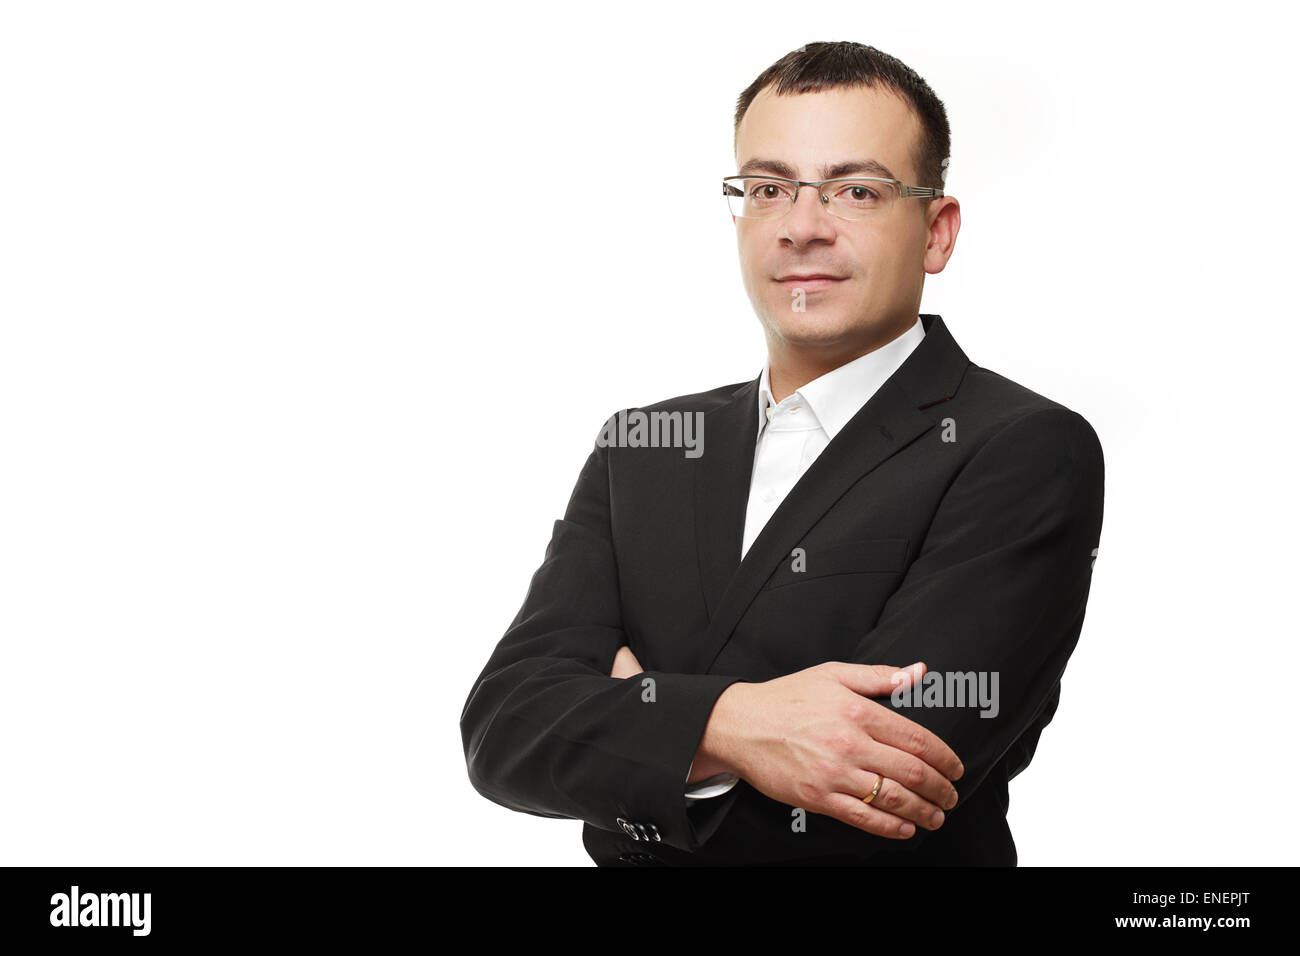 Businessman or CEO smart acting isolated on white background - Stock Image